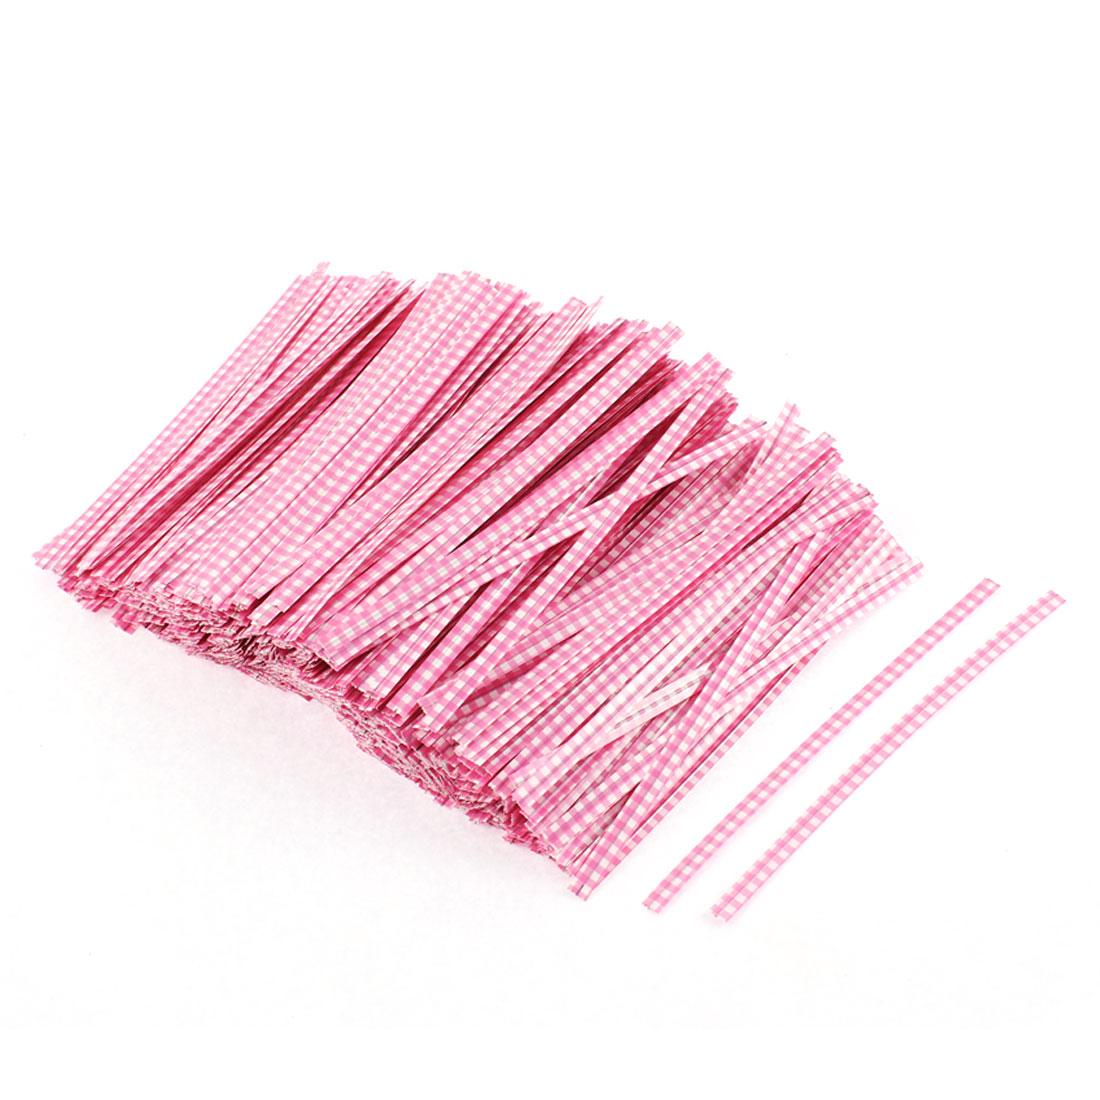 Grid Pattern Gift Candy Bags Packaging Twist Ties Pink 1200PCS